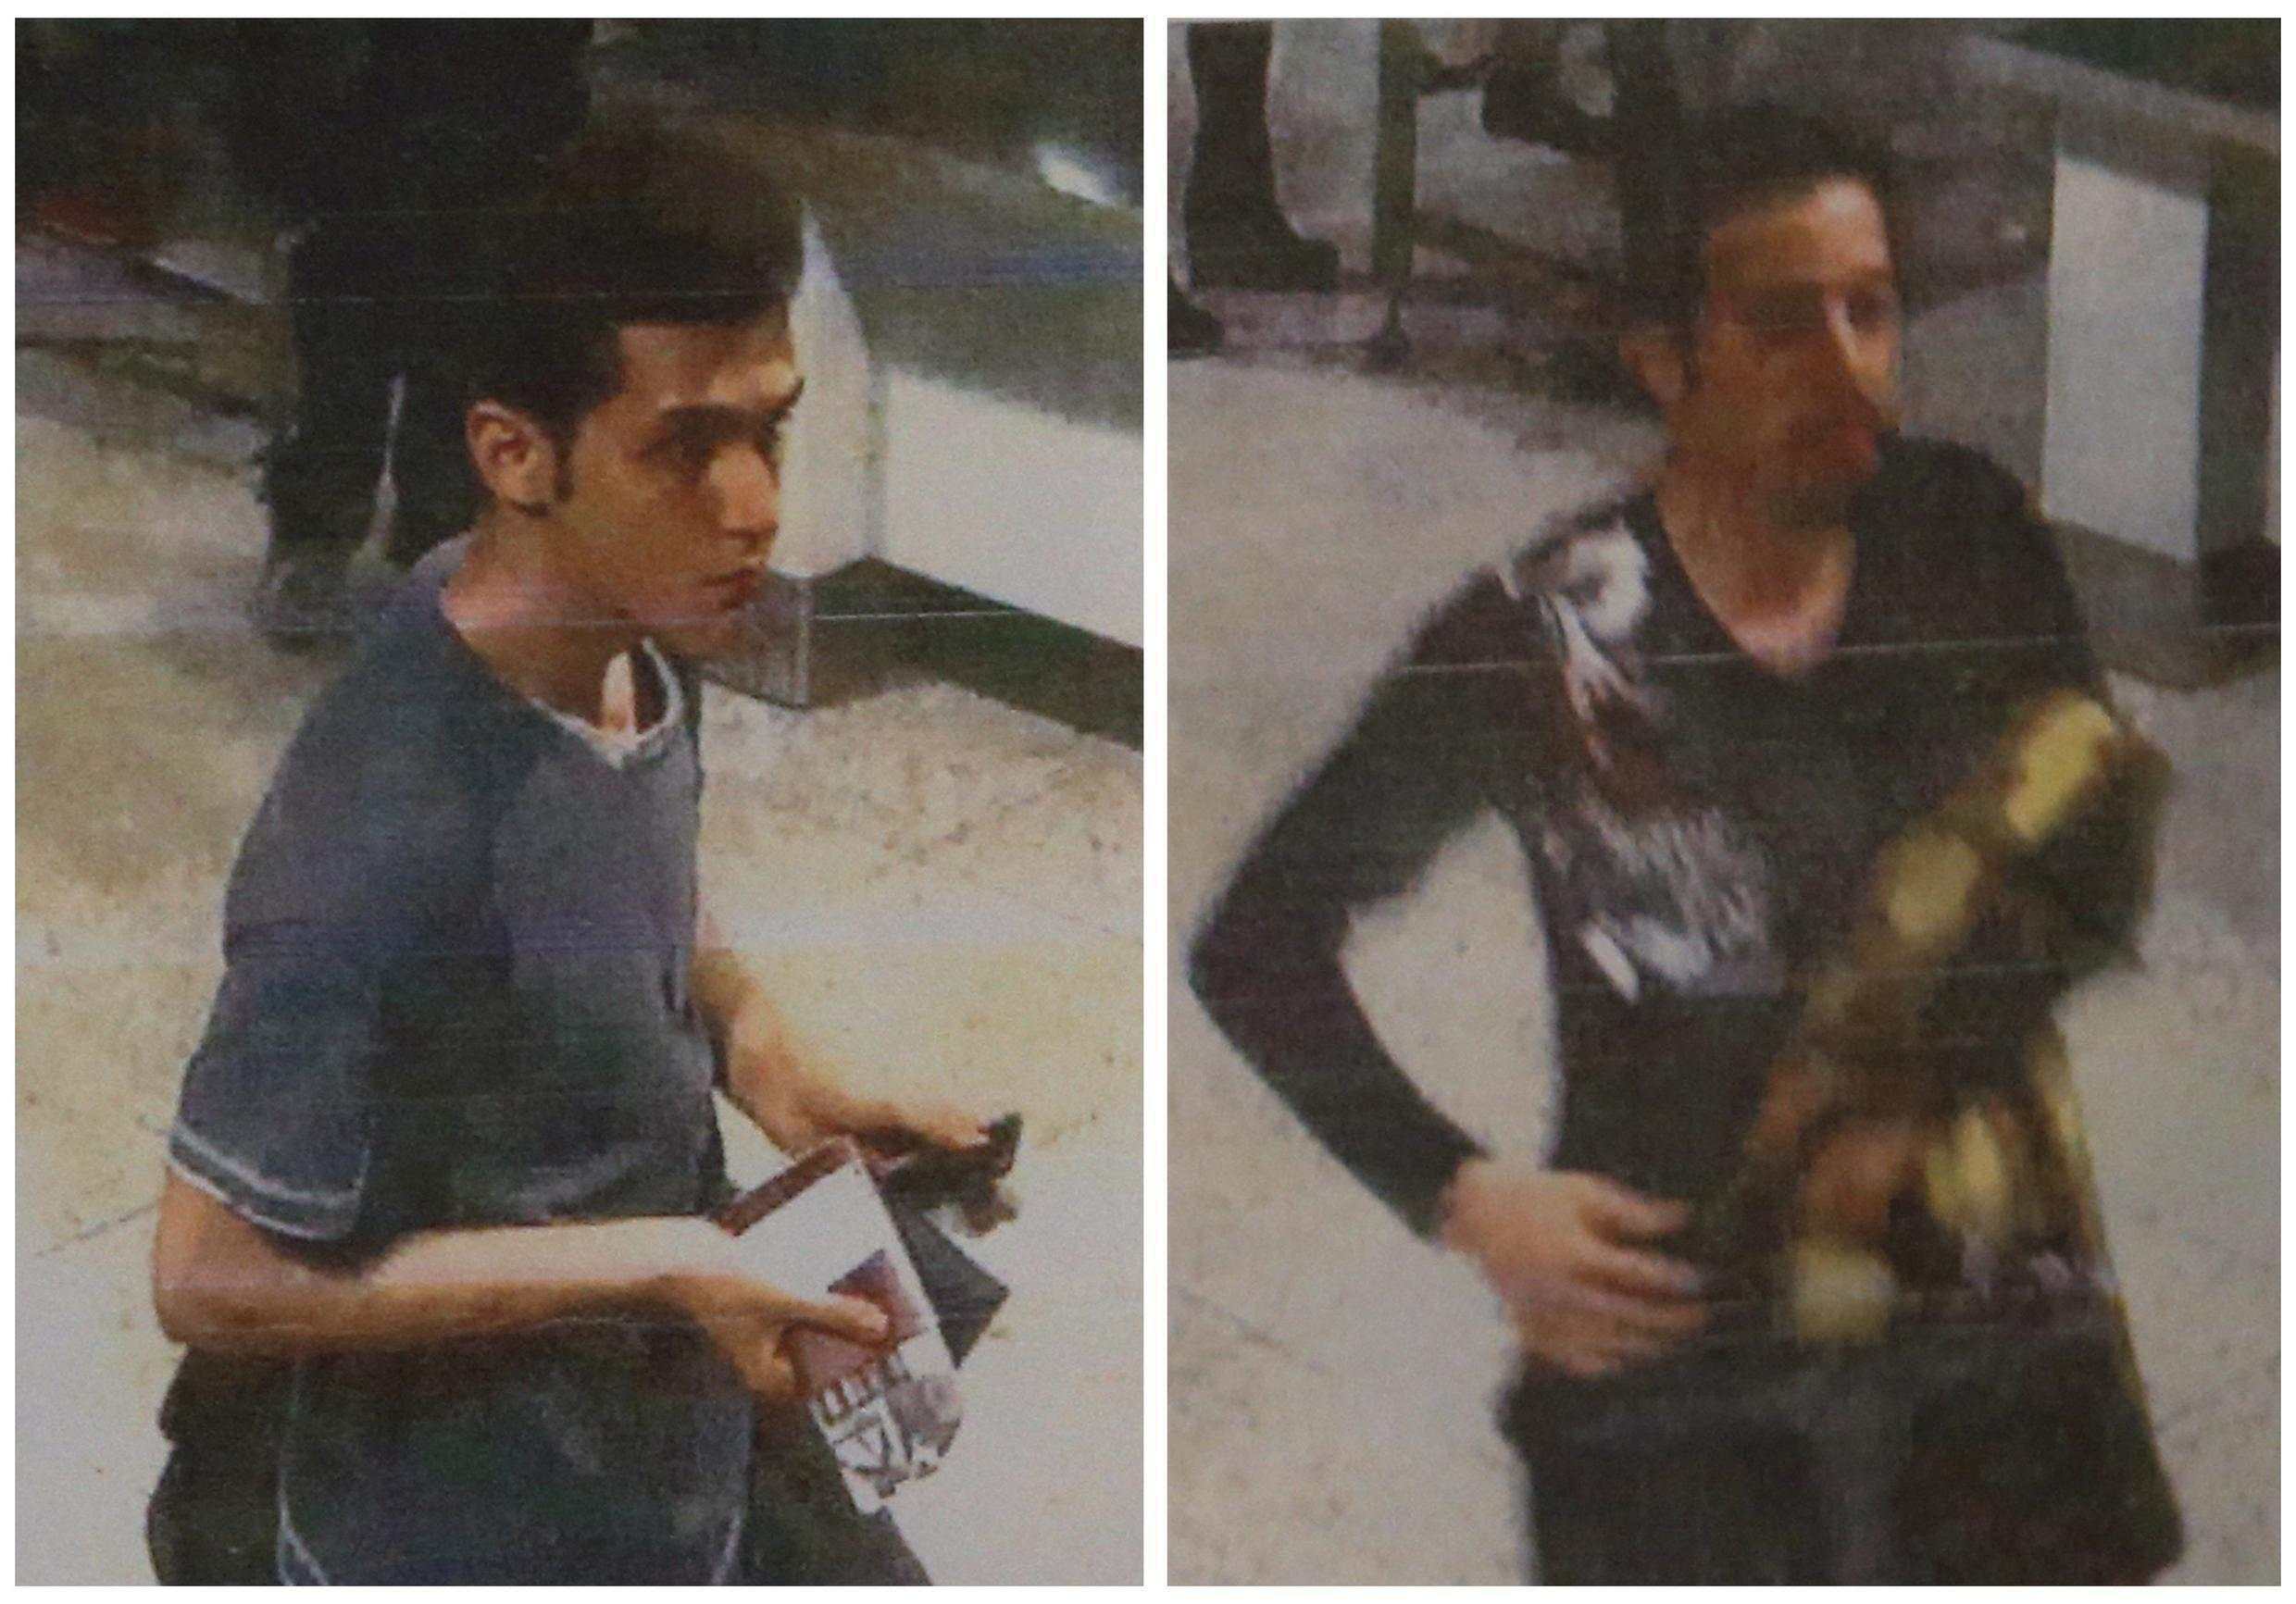 The two men whom police said were travelling on stolen passports onboard the missing Malaysia Airlines MH370 plane